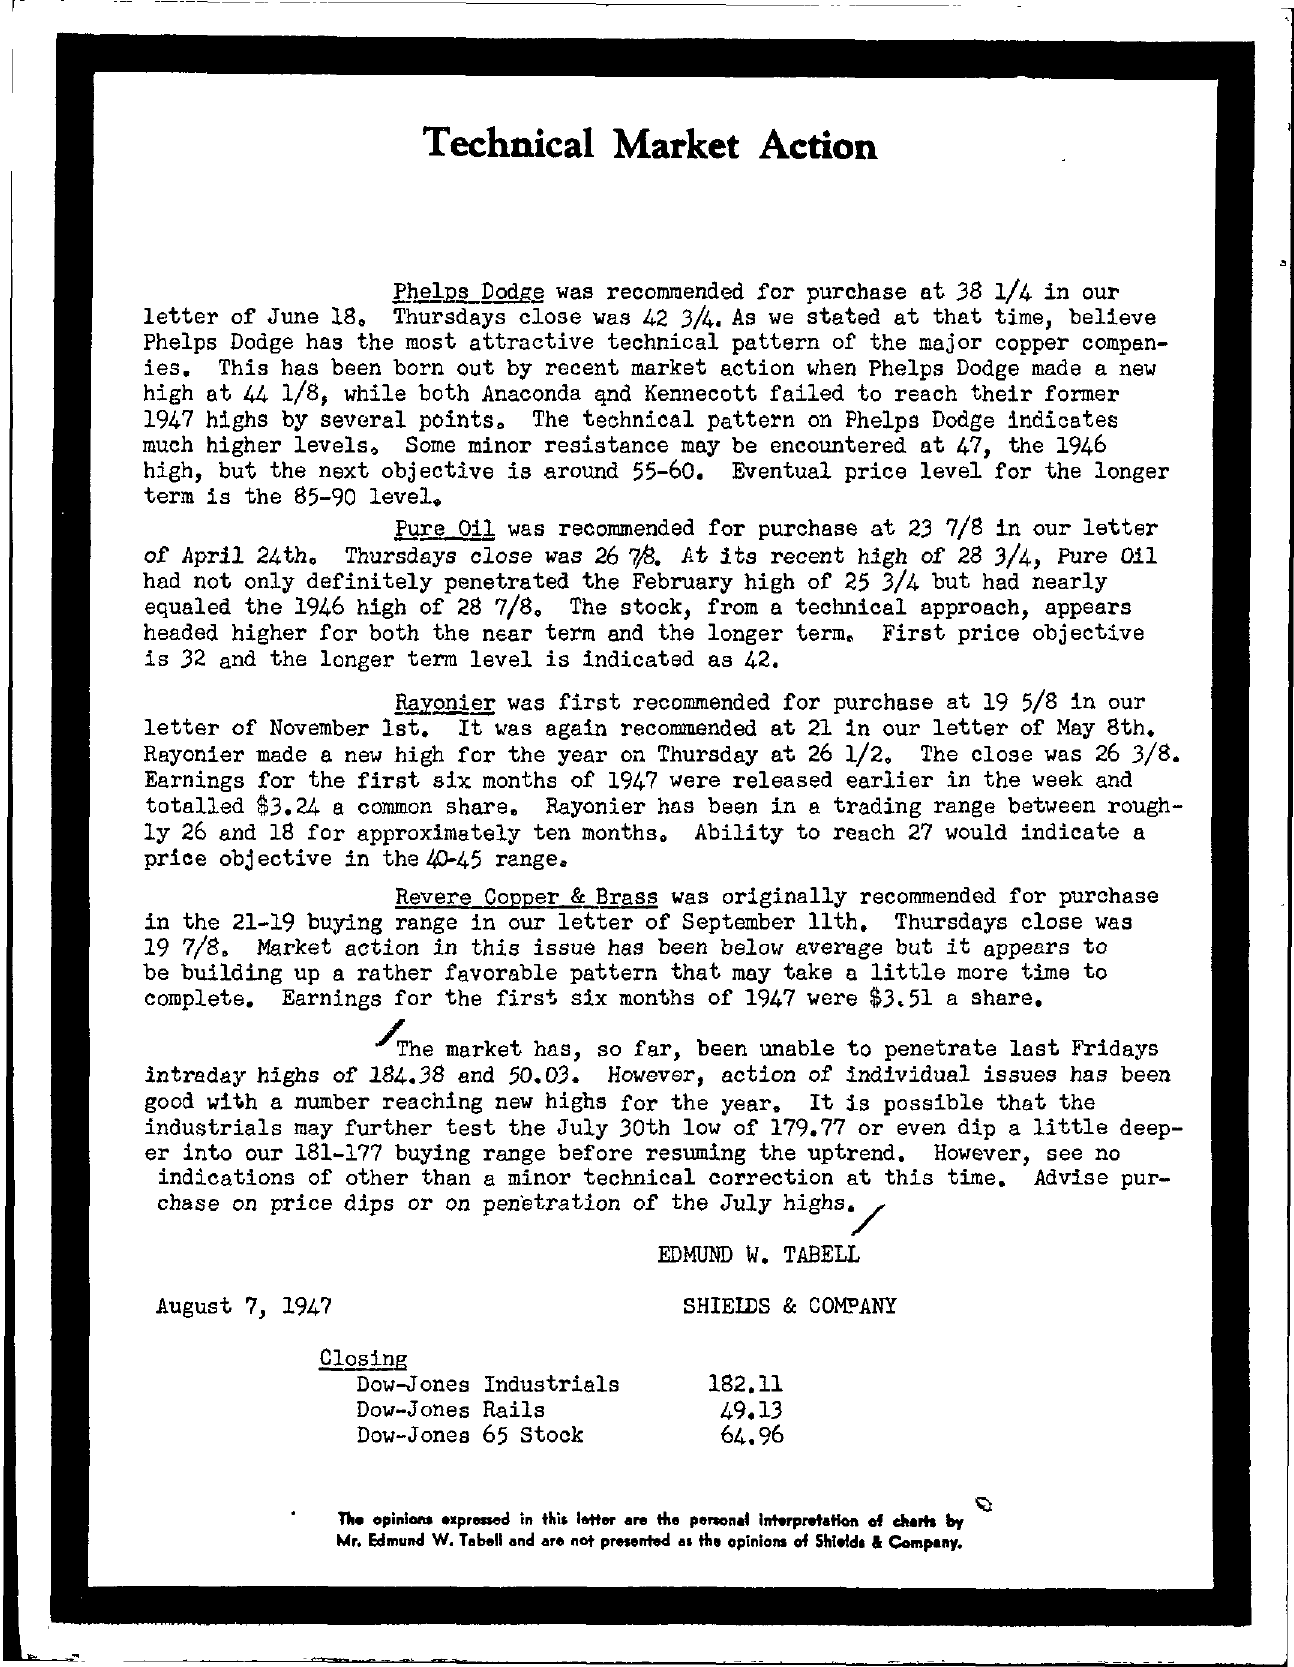 Tabell's Market Letter - August 07, 1947